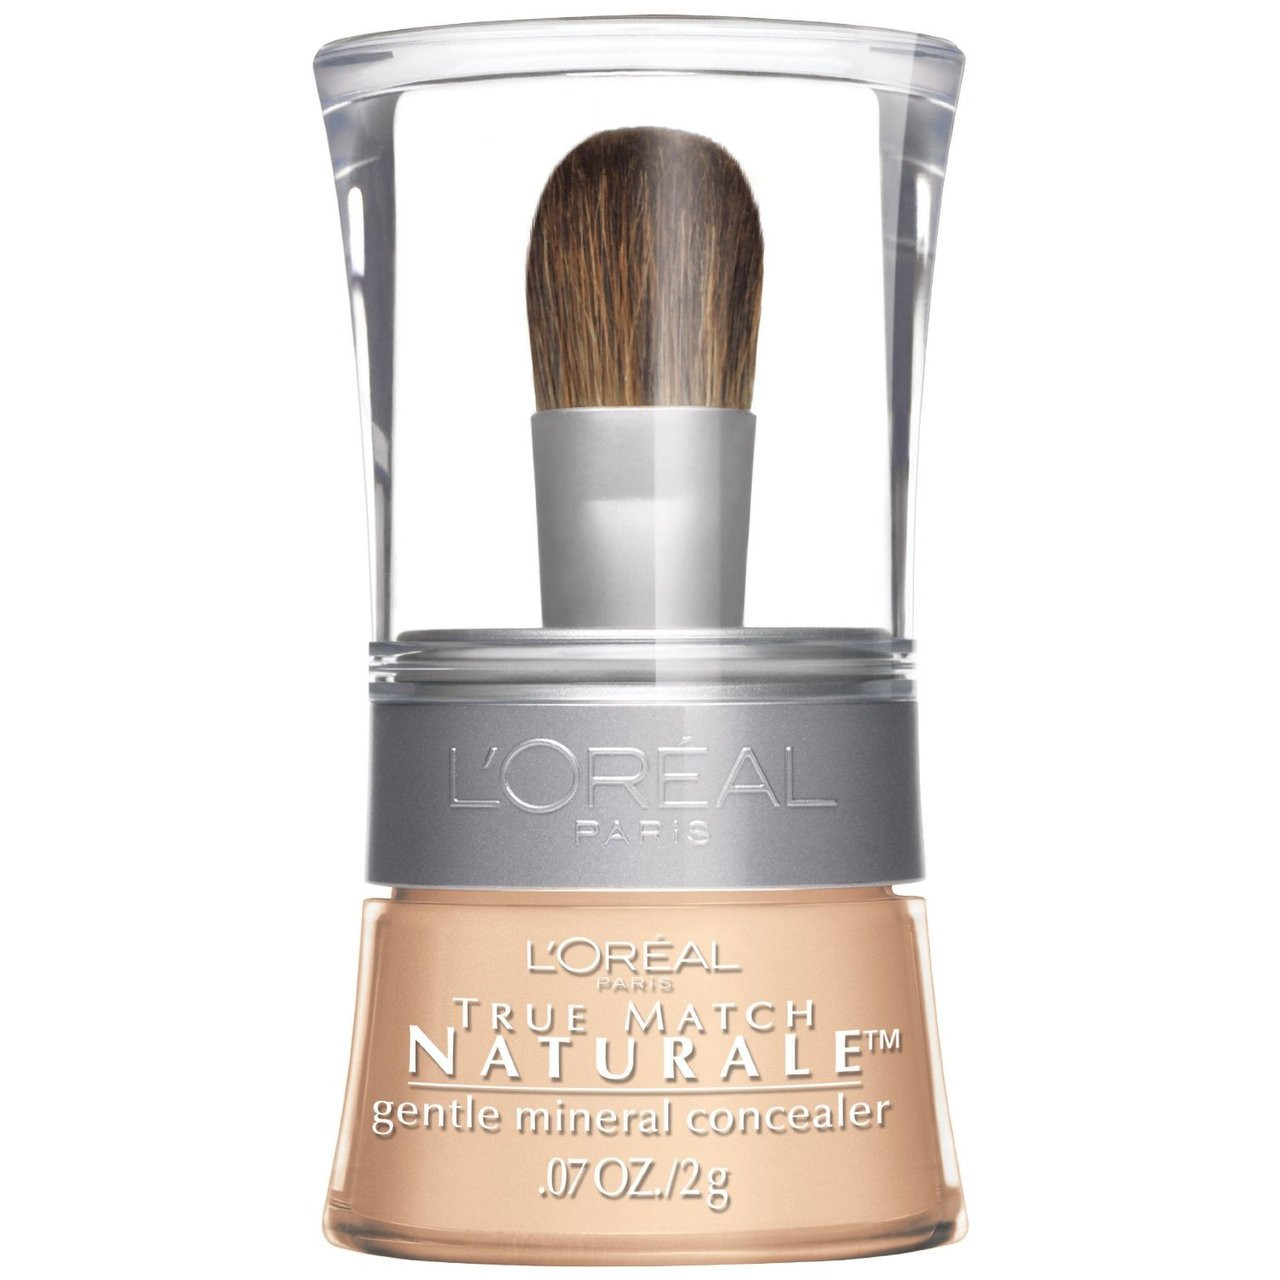 Bare Naturale Gentle Mineral Eye Shadow by L'Oreal #9